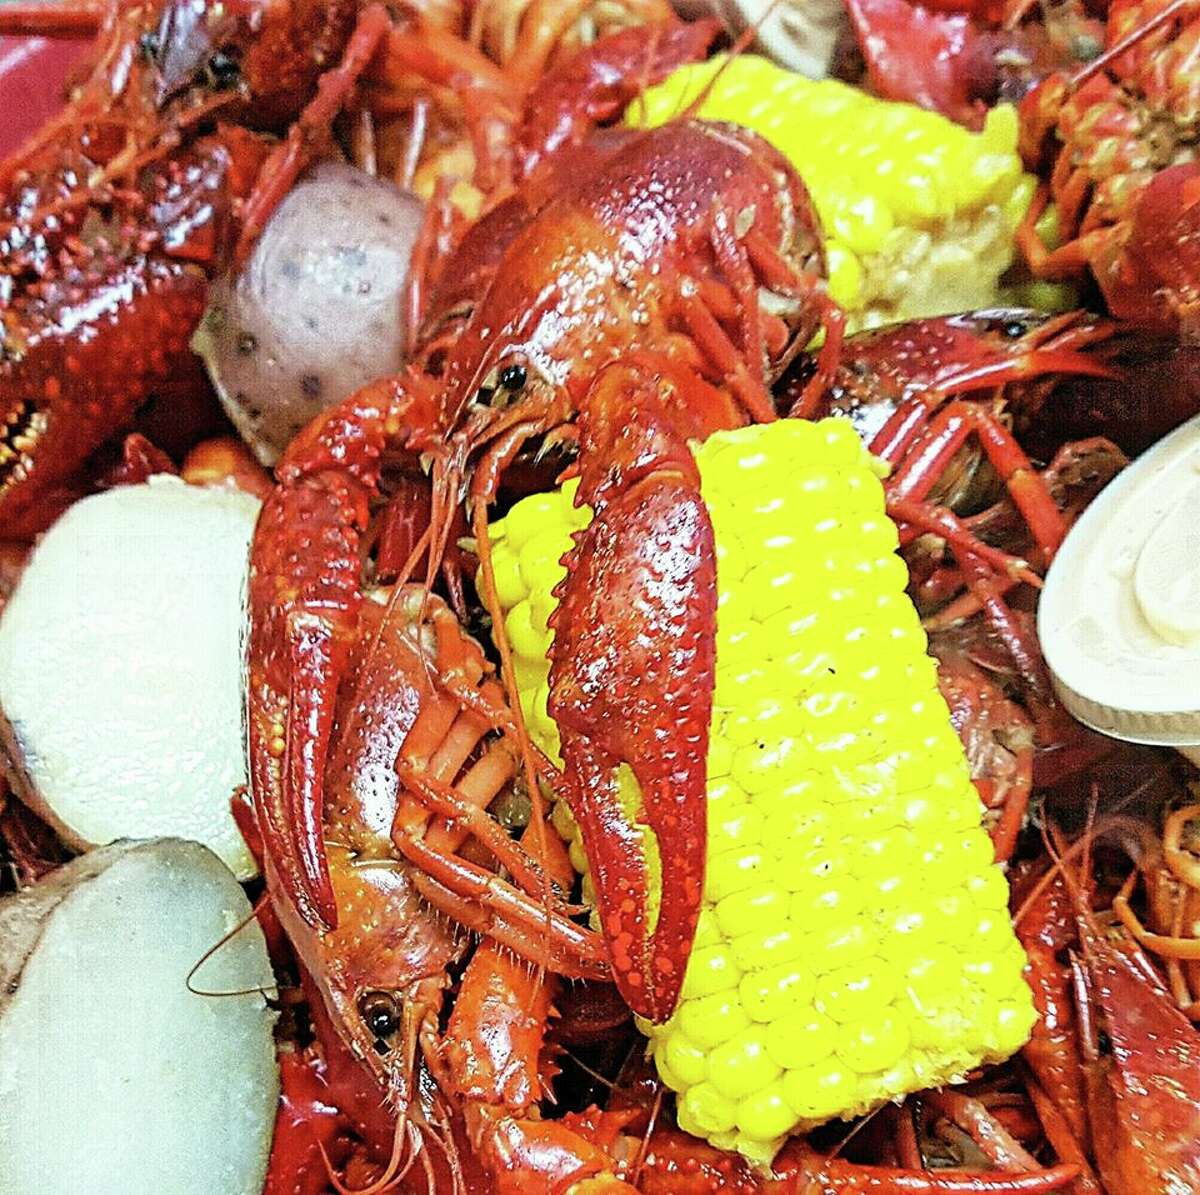 The Cajun Stop 2130 Jefferson, 713-222-833324230 Kuykendahl, Ste. 250, Srping, 832-559-7952Menu: Prices have been about $7.99 per pound (two pound minimum) for seasonal crawfish boil. You'll enjoy the true Louisiana-proud (and friendly) atmosphere of the restaurant that specializes in po'boys and traditional Cajun dishes.